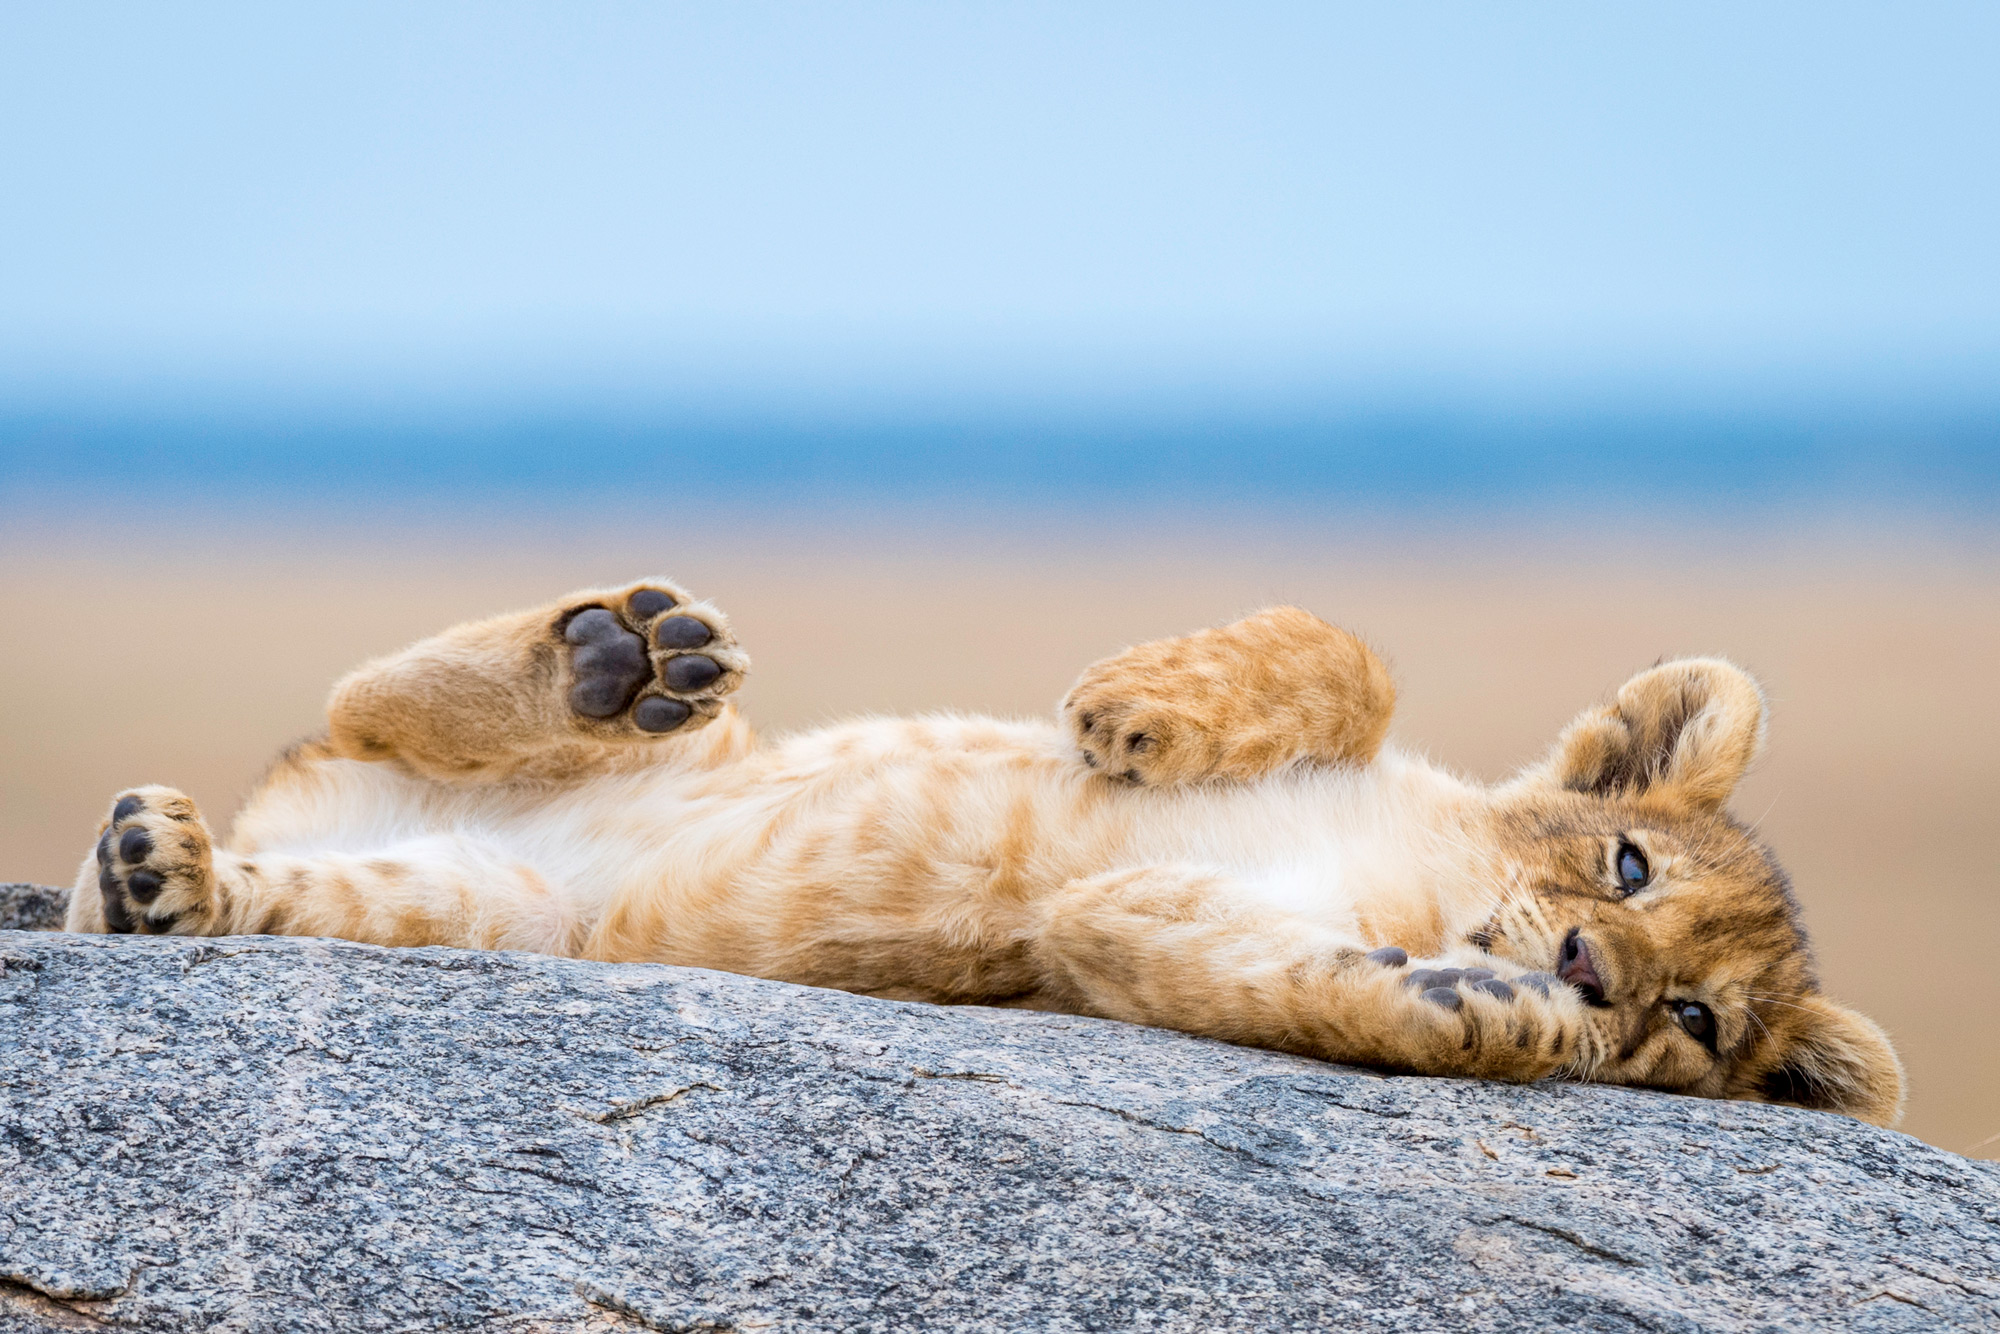 A lion cub relaxes on a rock in Serengeti National Park, Tanzania